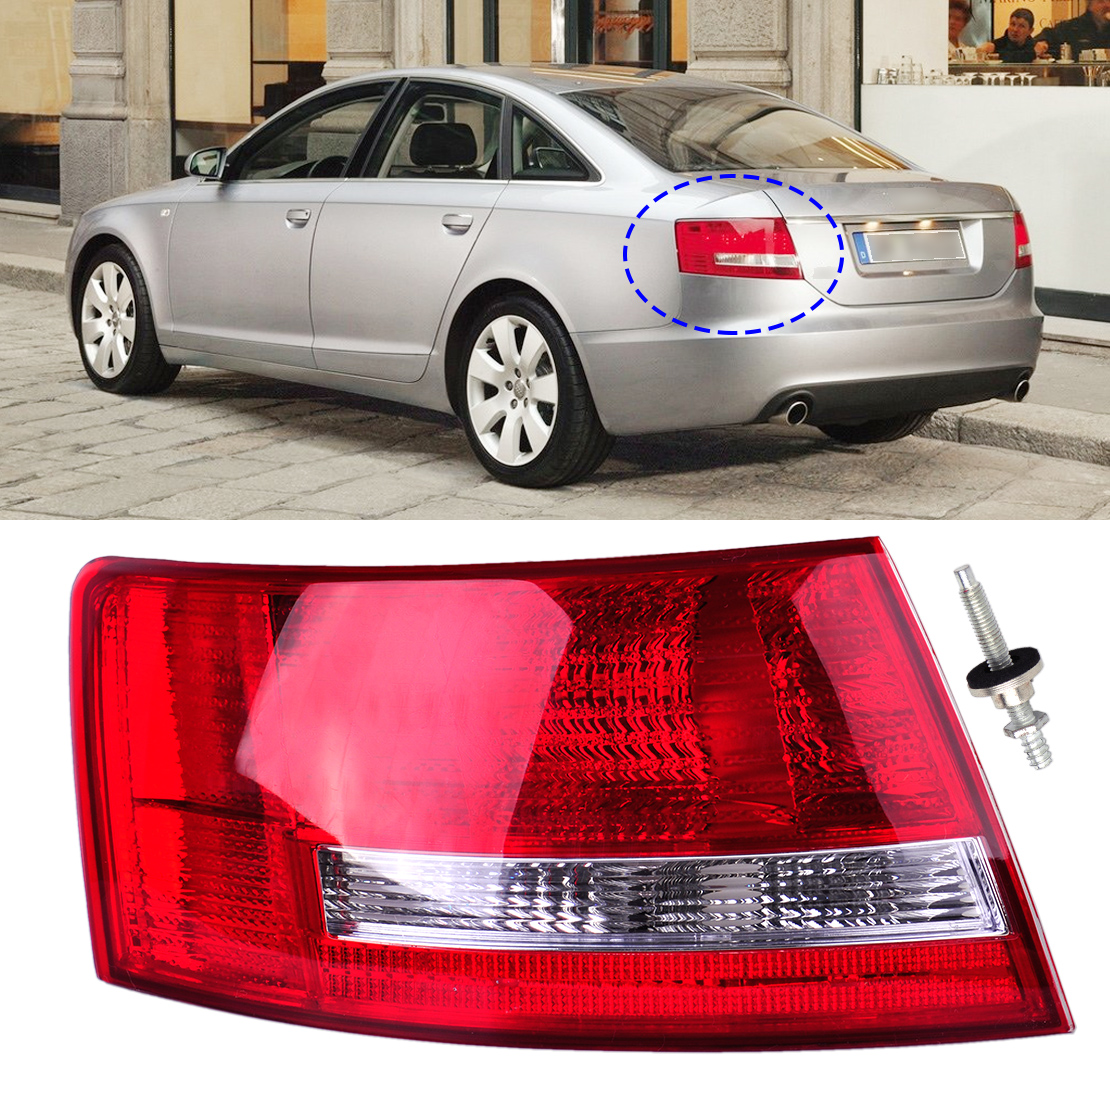 hight resolution of online shop citall left tail light assembly lamp housing without bulb for audi a6 quattro sedan 2005 2006 2007 2008 4f5945095l 4f5945095d aliexpress